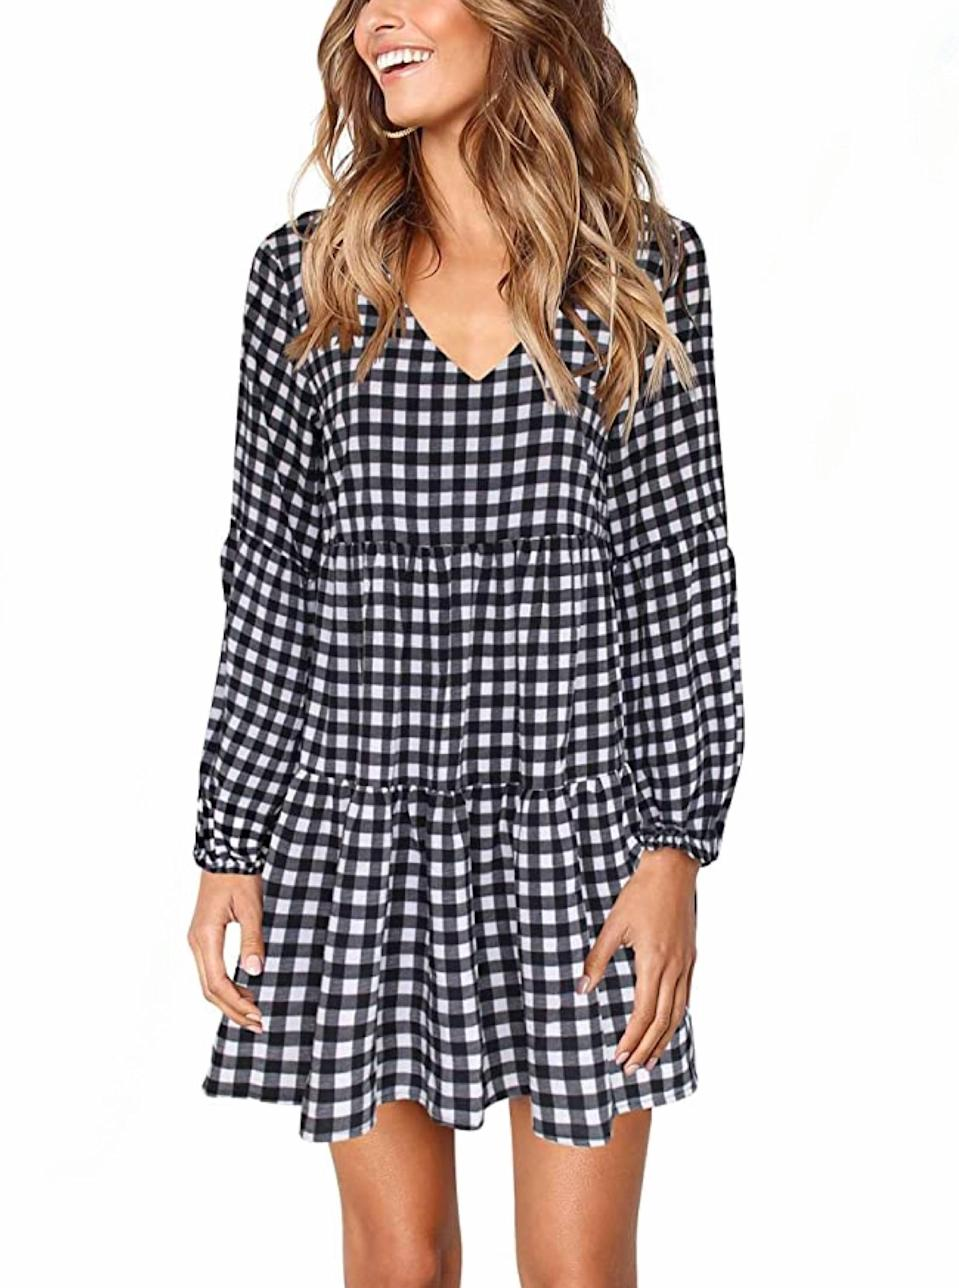 """Get in on gingham with this breezy tiered mini dress that will bring <a href=""""https://www.glamour.com/story/picnic-essentials?mbid=synd_yahoo_rss"""" rel=""""nofollow noopener"""" target=""""_blank"""" data-ylk=""""slk:picnic"""" class=""""link rapid-noclick-resp"""">picnic</a> vibes to the table. $25, Amazon. <a href=""""https://www.amazon.com/Womens-Casual-Shift-Dress-Sleeve/dp/B07Z8R76ZX/"""" rel=""""nofollow noopener"""" target=""""_blank"""" data-ylk=""""slk:Get it now!"""" class=""""link rapid-noclick-resp"""">Get it now!</a>"""